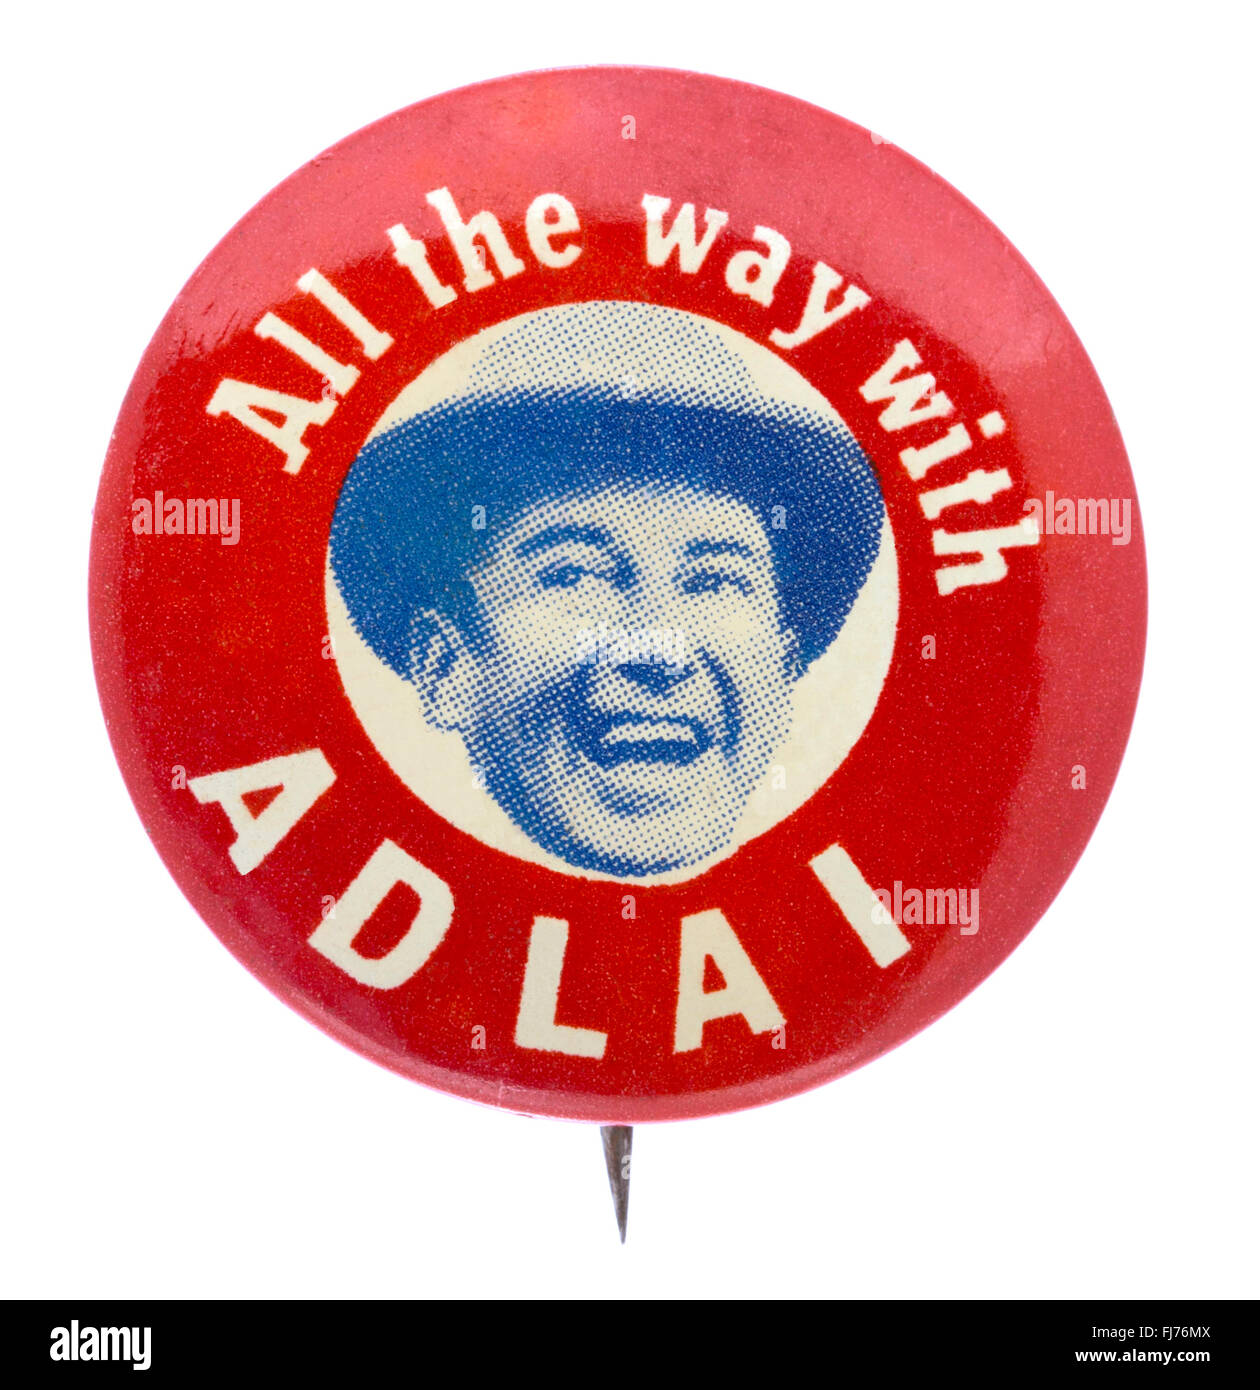 1956 US presidential campaign button for democratic candidate Adlai Stevenson - Stock Image